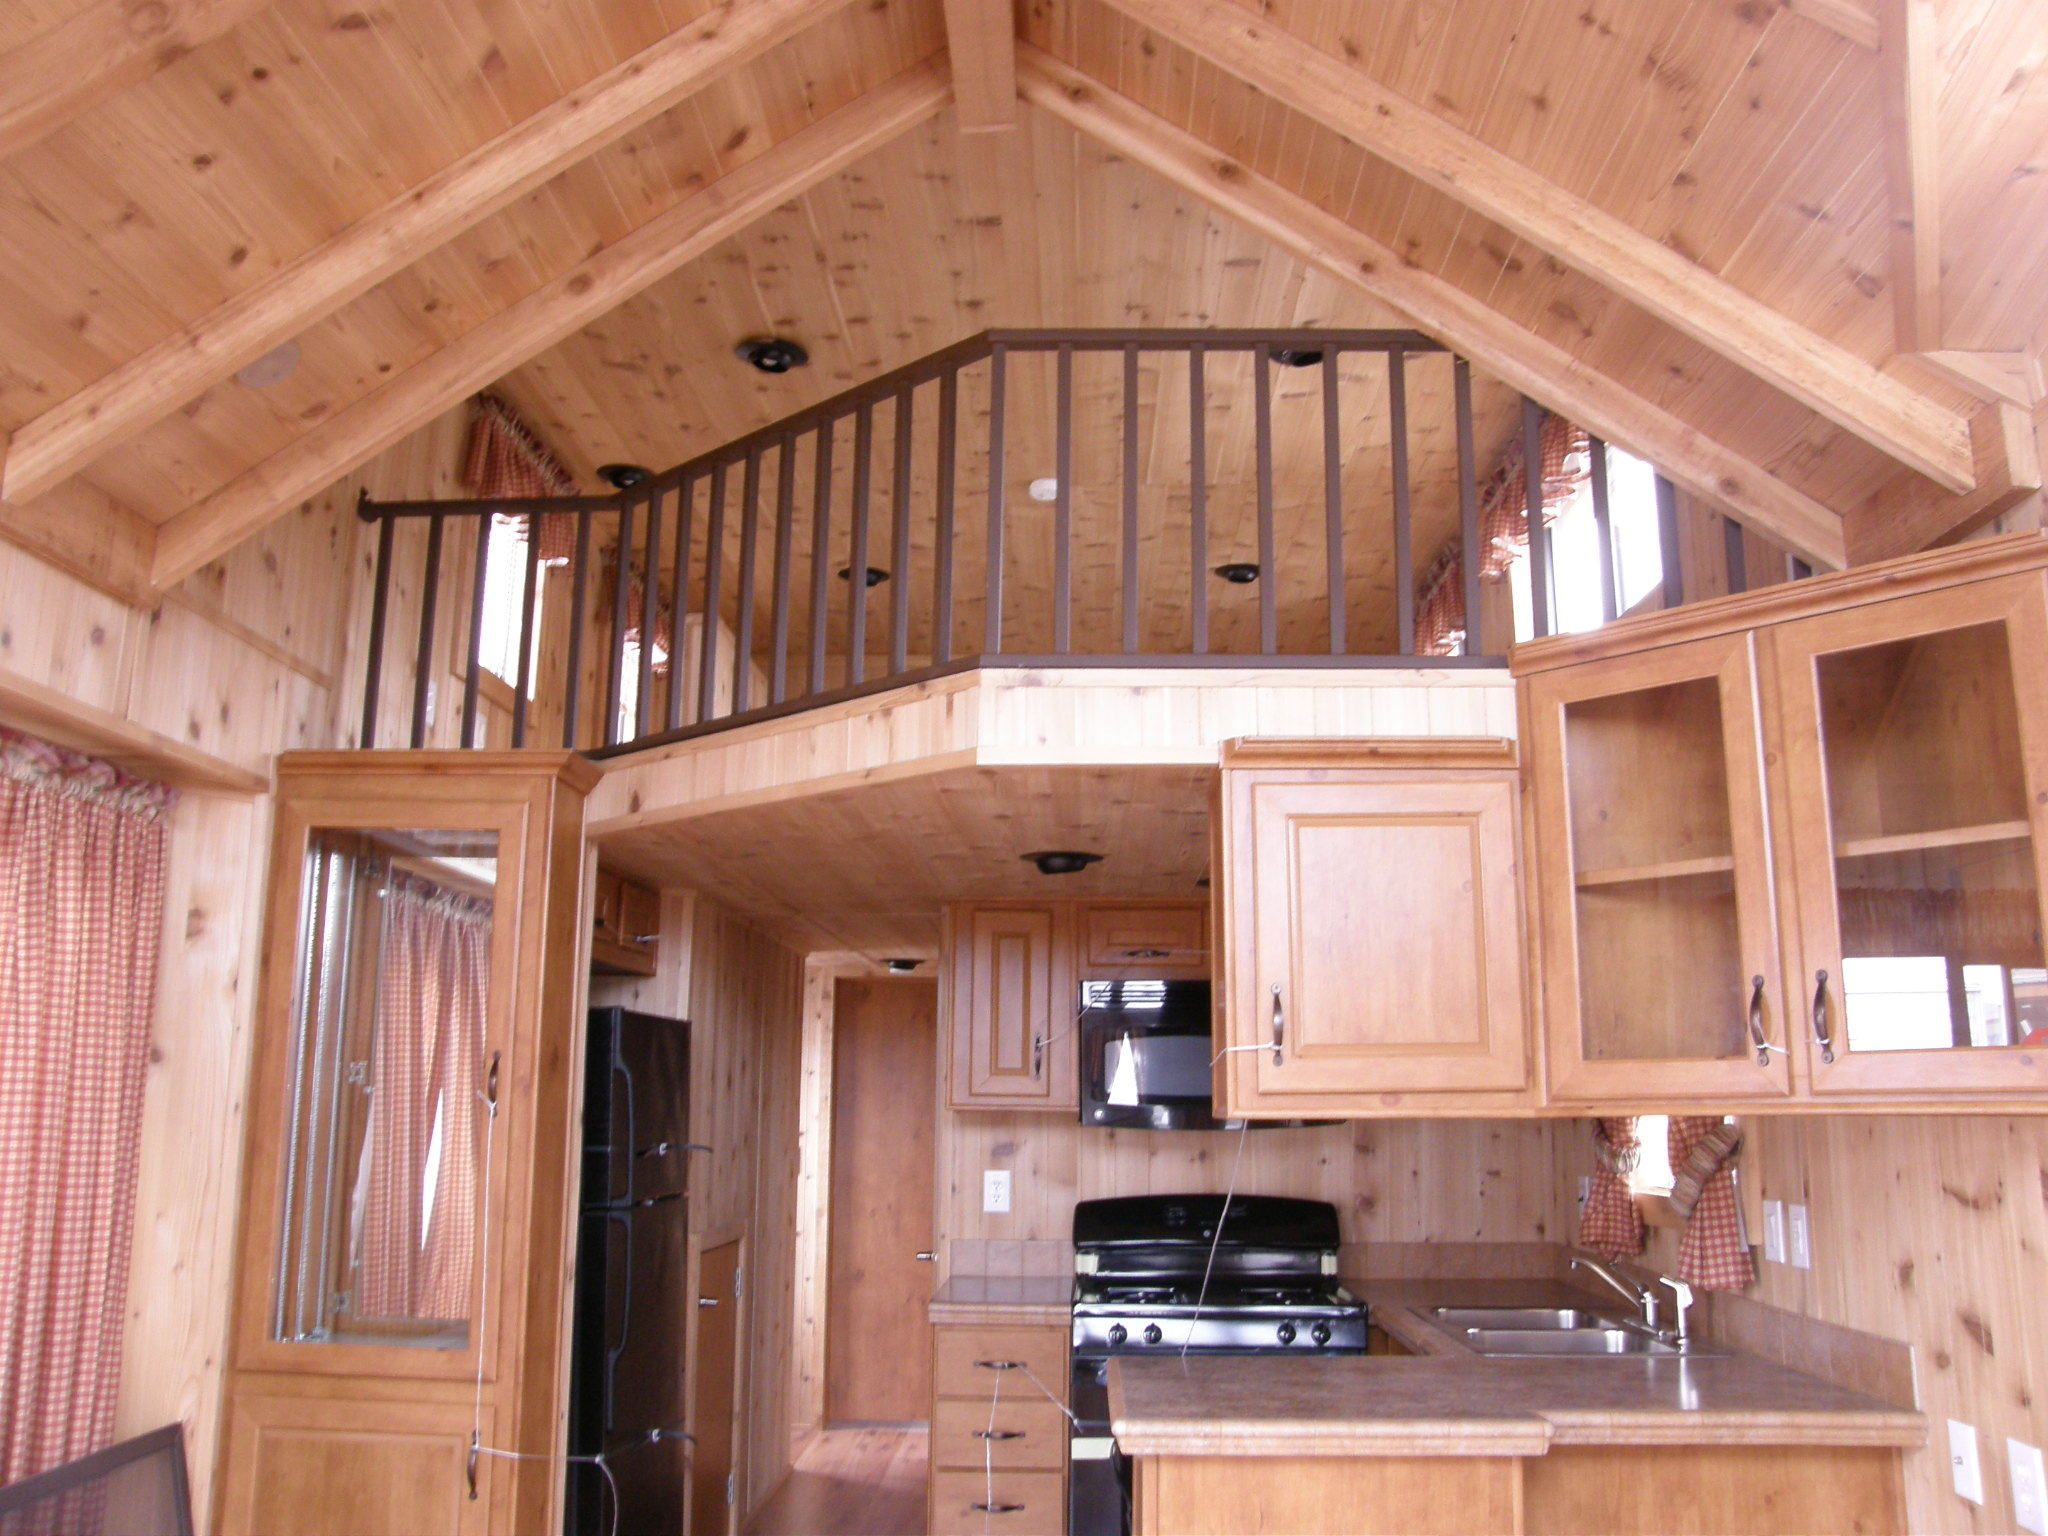 Inside The Big Tiny House On Wheels ~ What A Beautiful Kitchen! I Could